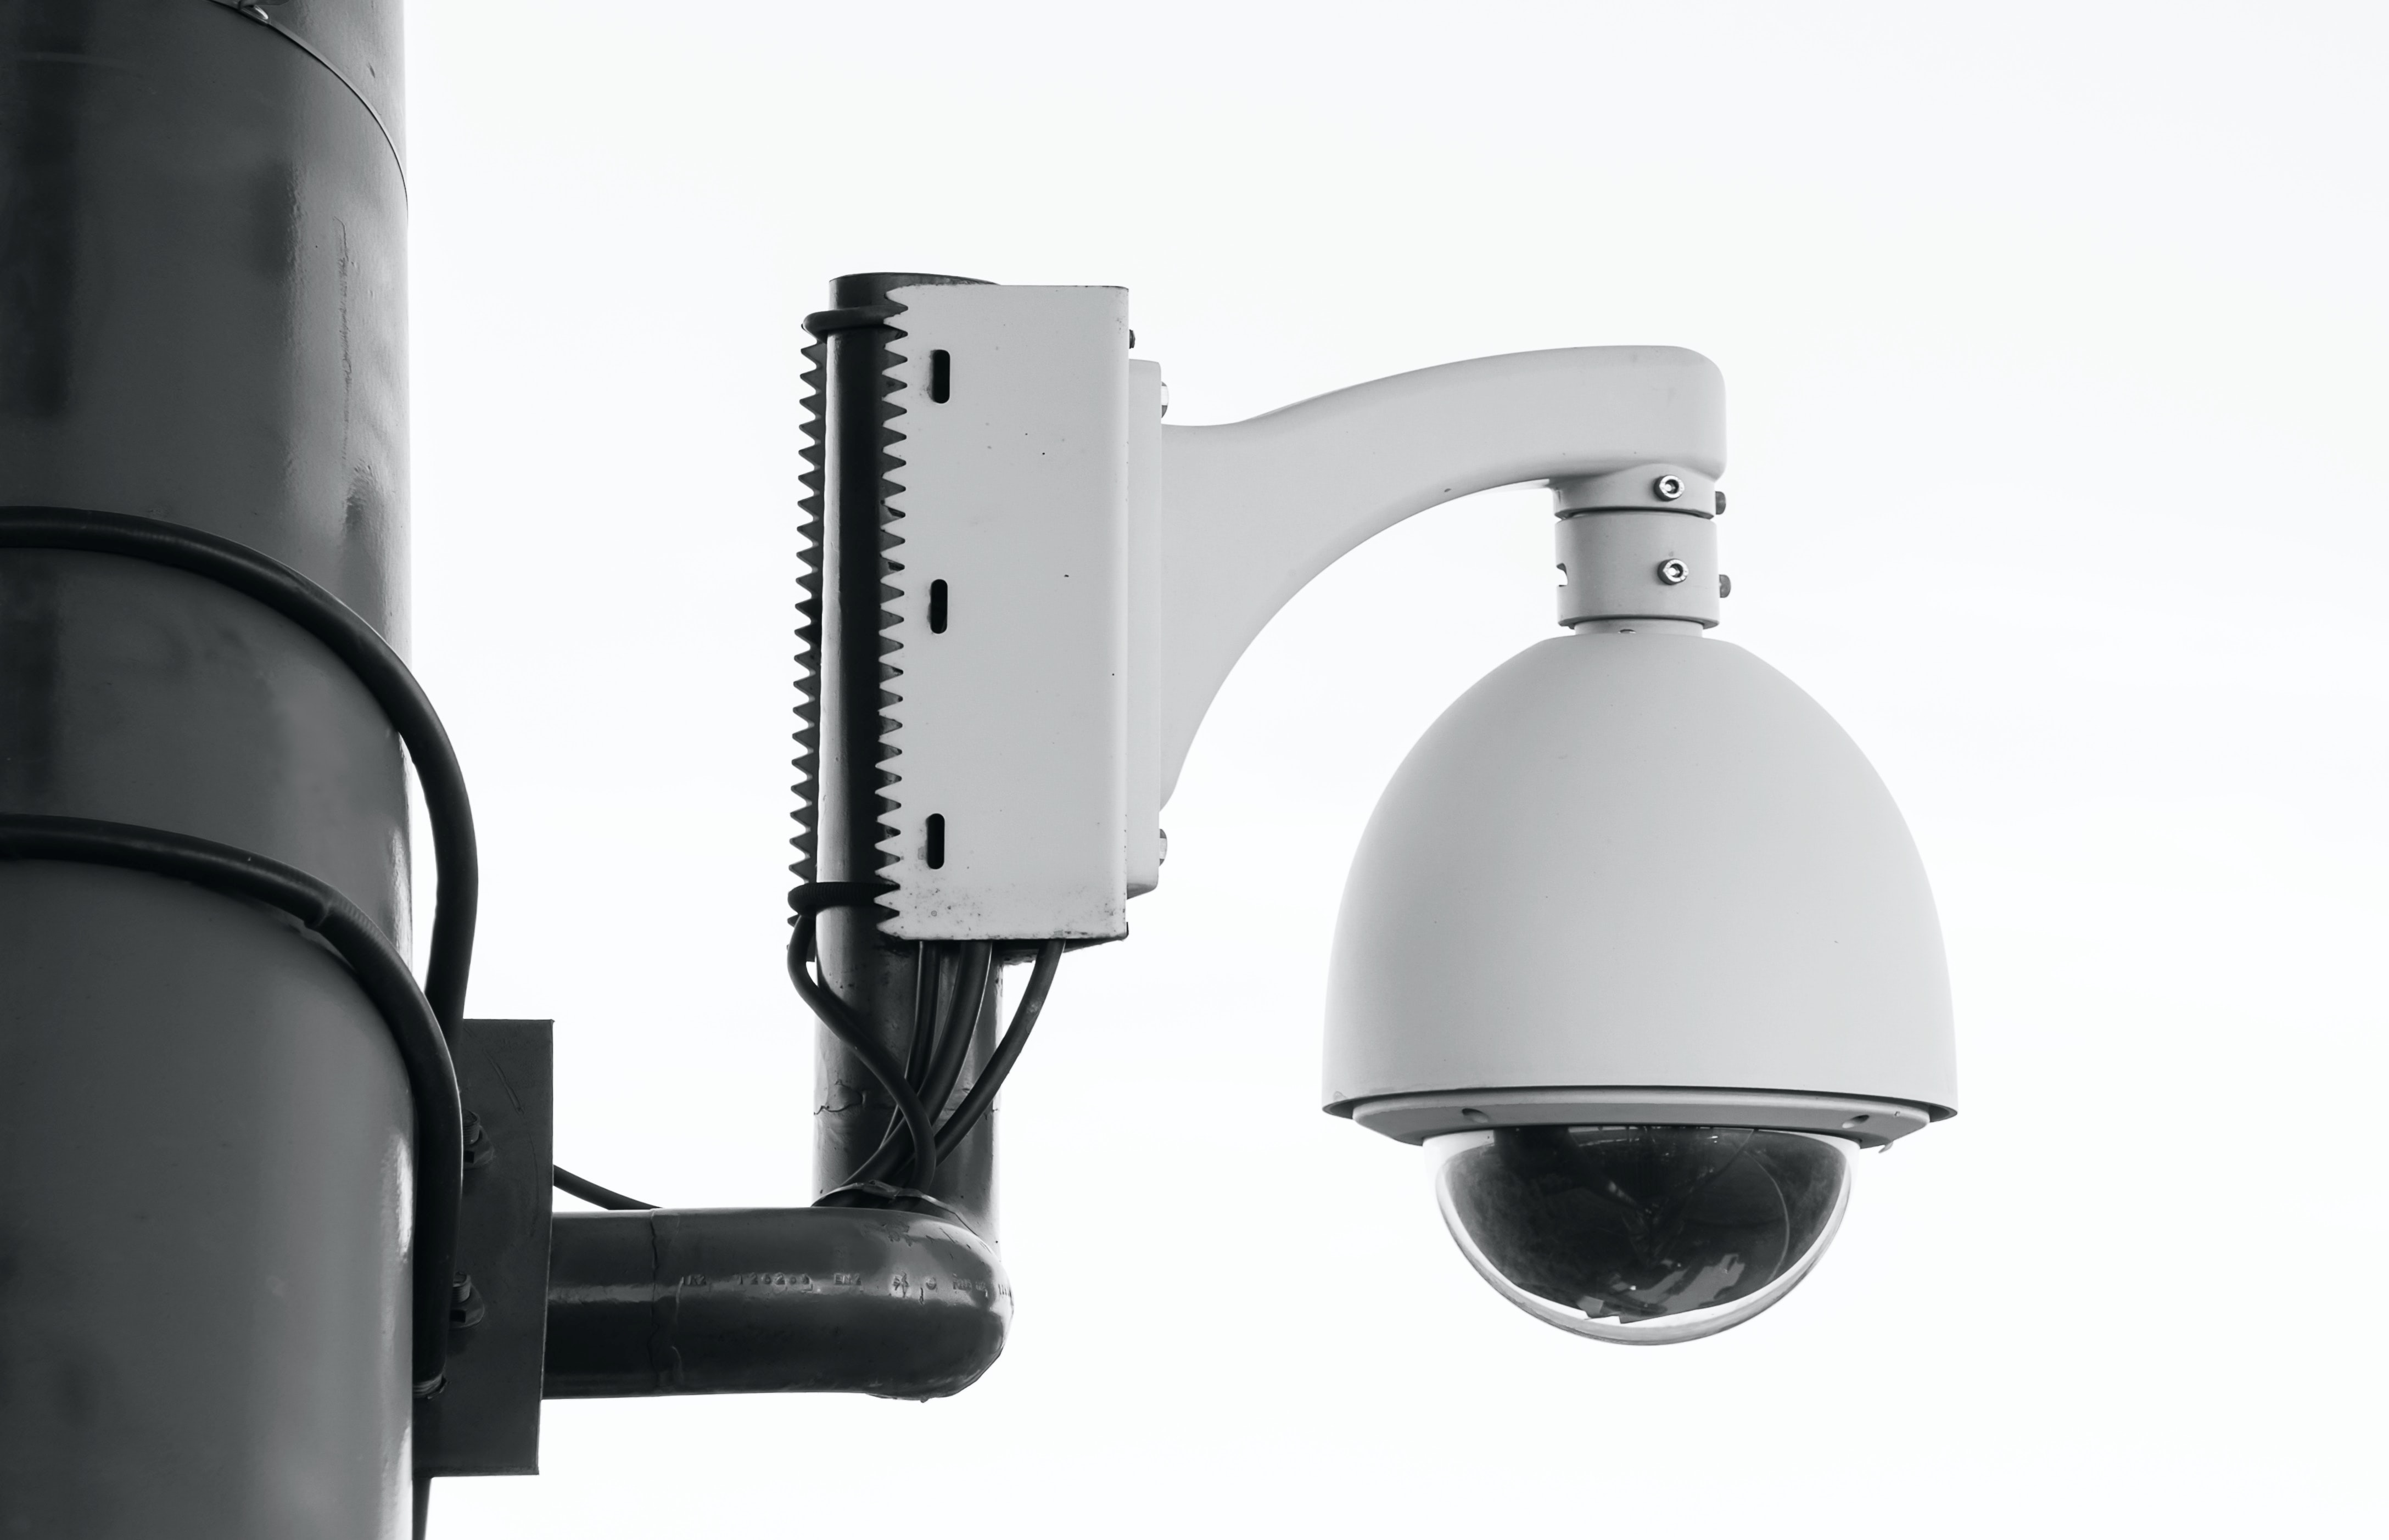 What To Know Before Install A CCTV Surveillance System